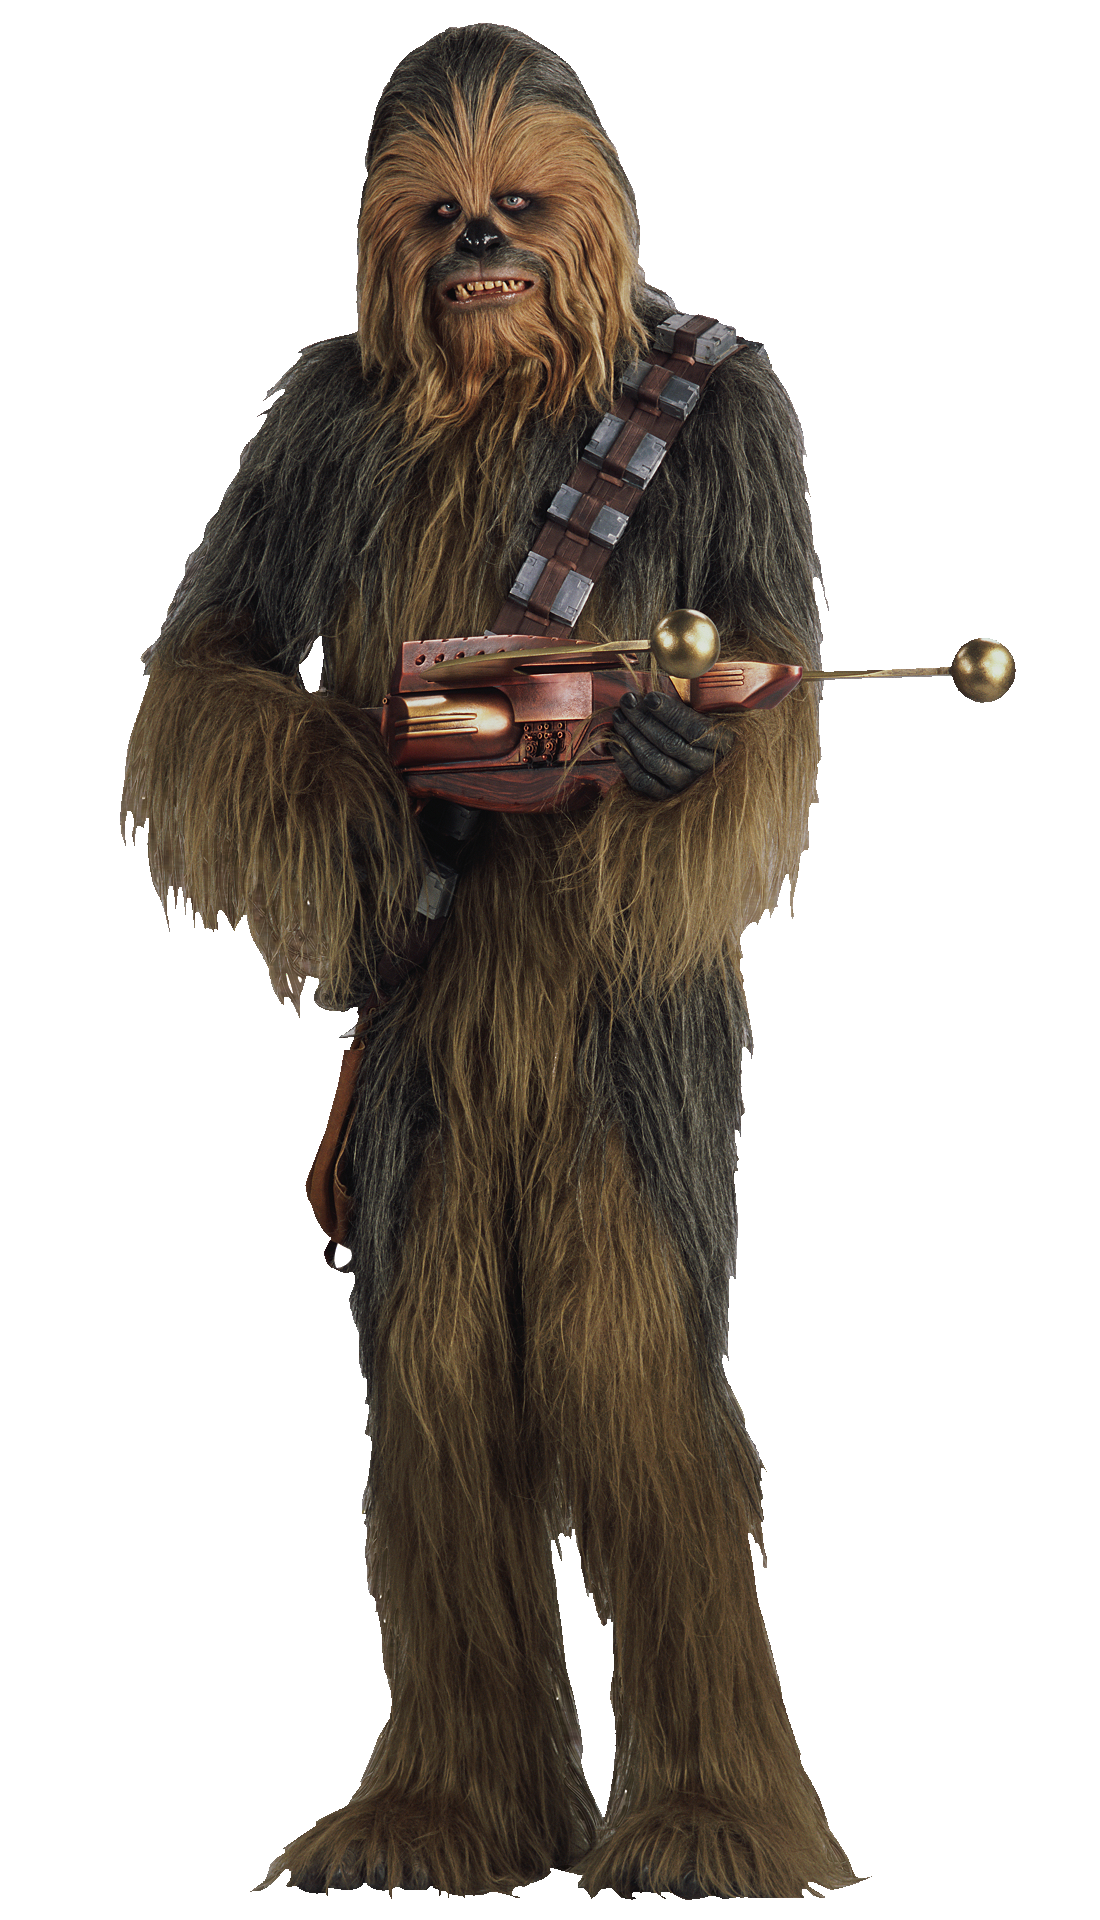 Chewbacca clipart transparent background. Star wars png image